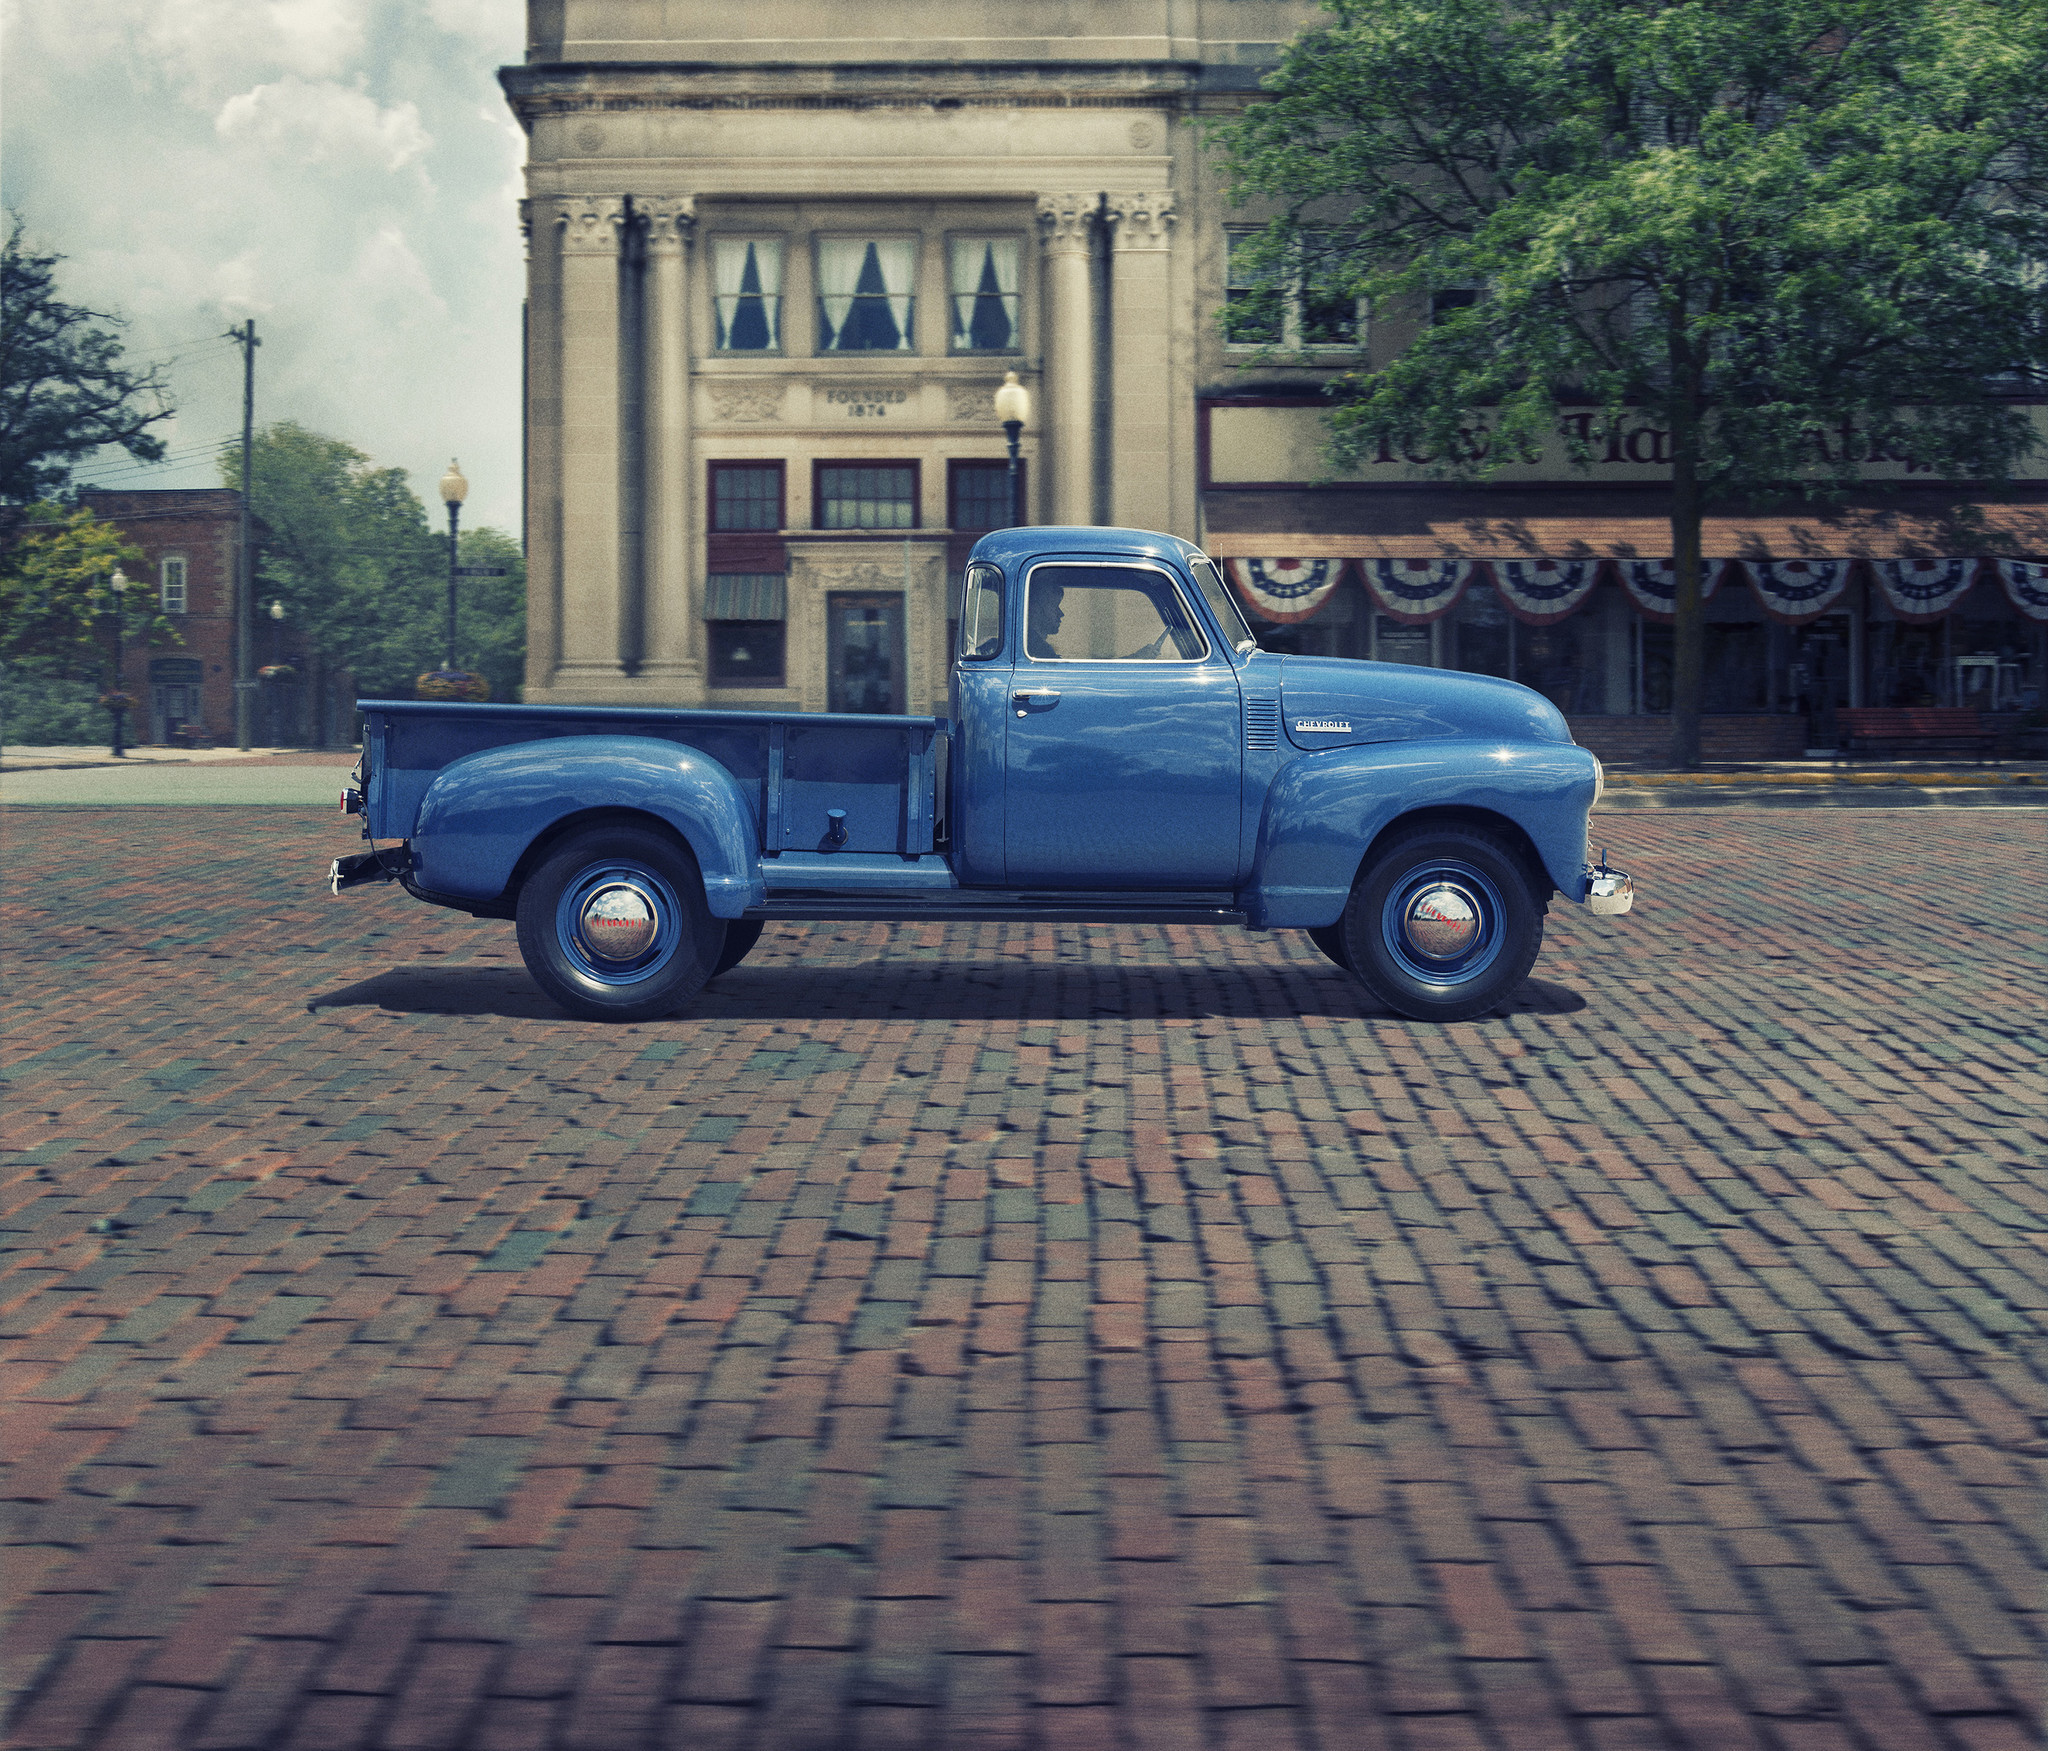 Chevy trucks celebrate 100 years